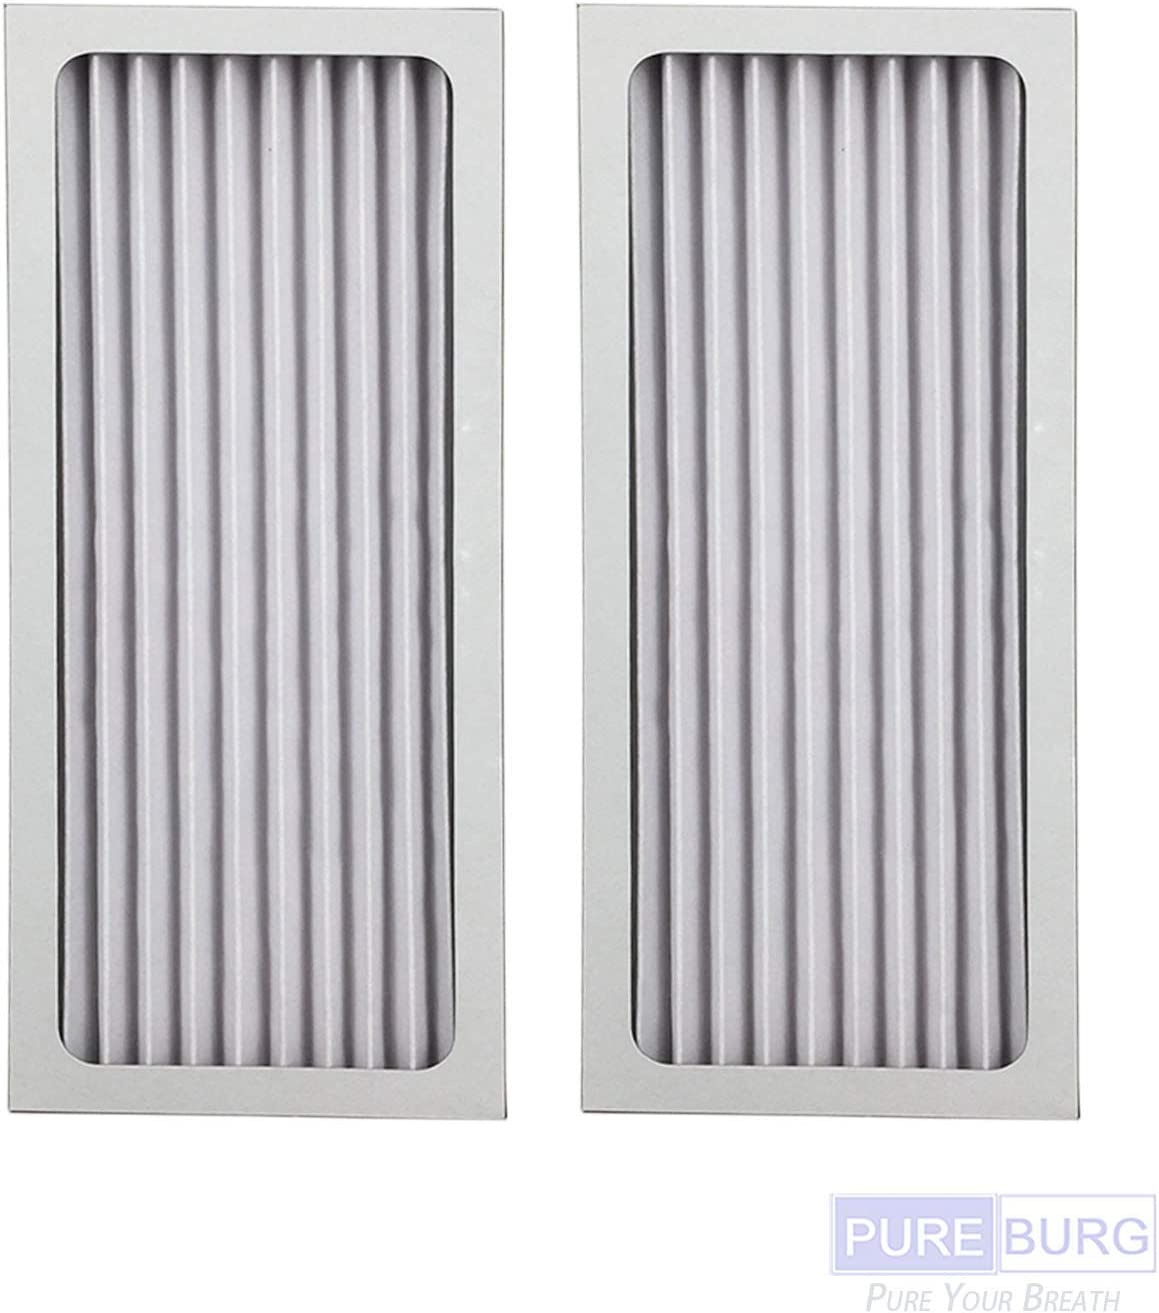 PUREBURG 2-Pack Replacement HEPA Air Filters for Hamilton Beach 990051000 fits TrueAir Glow Compact Pet 04383 04384 04385 04386 Air Purifiers